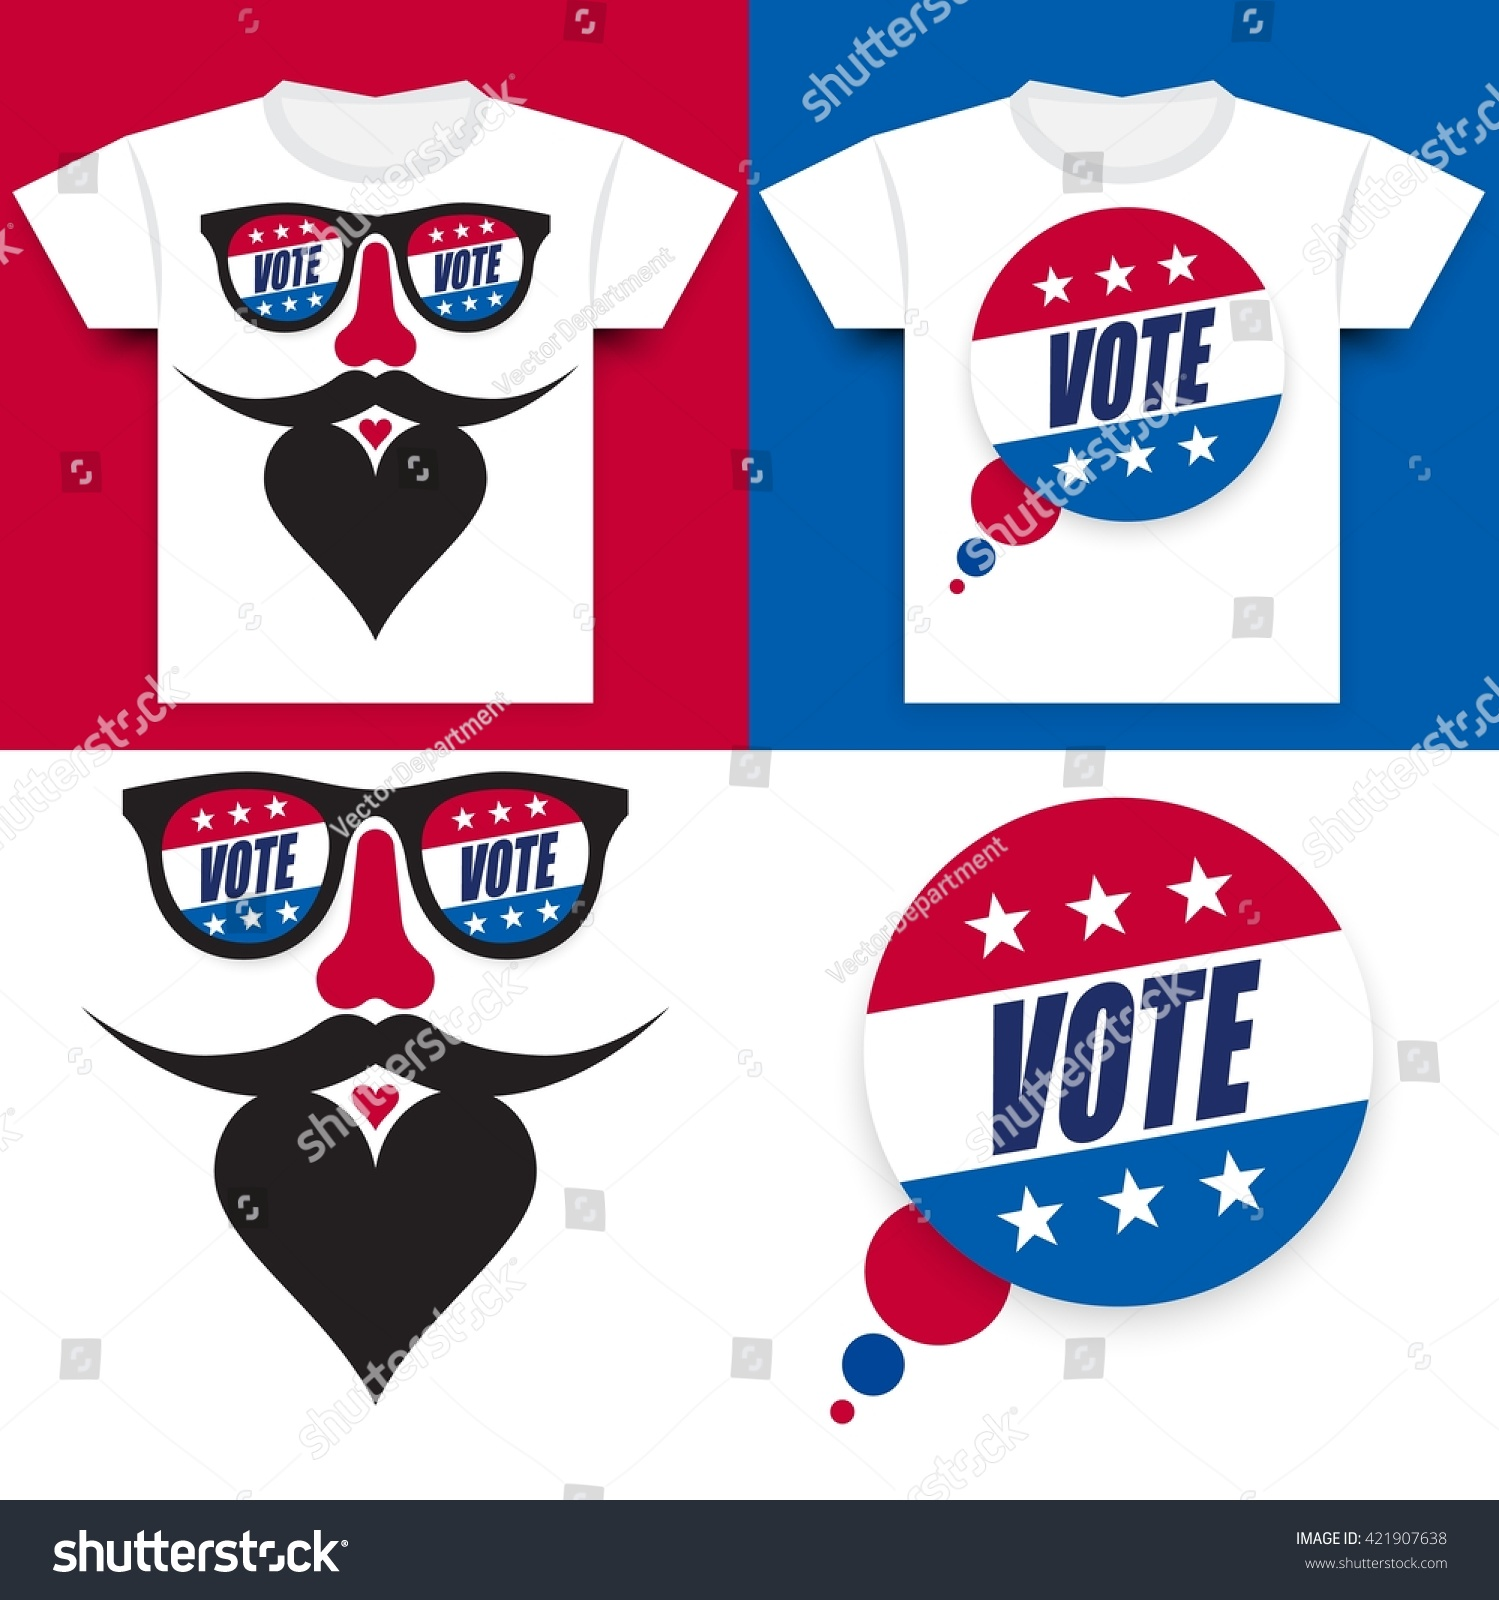 T shirt design vote